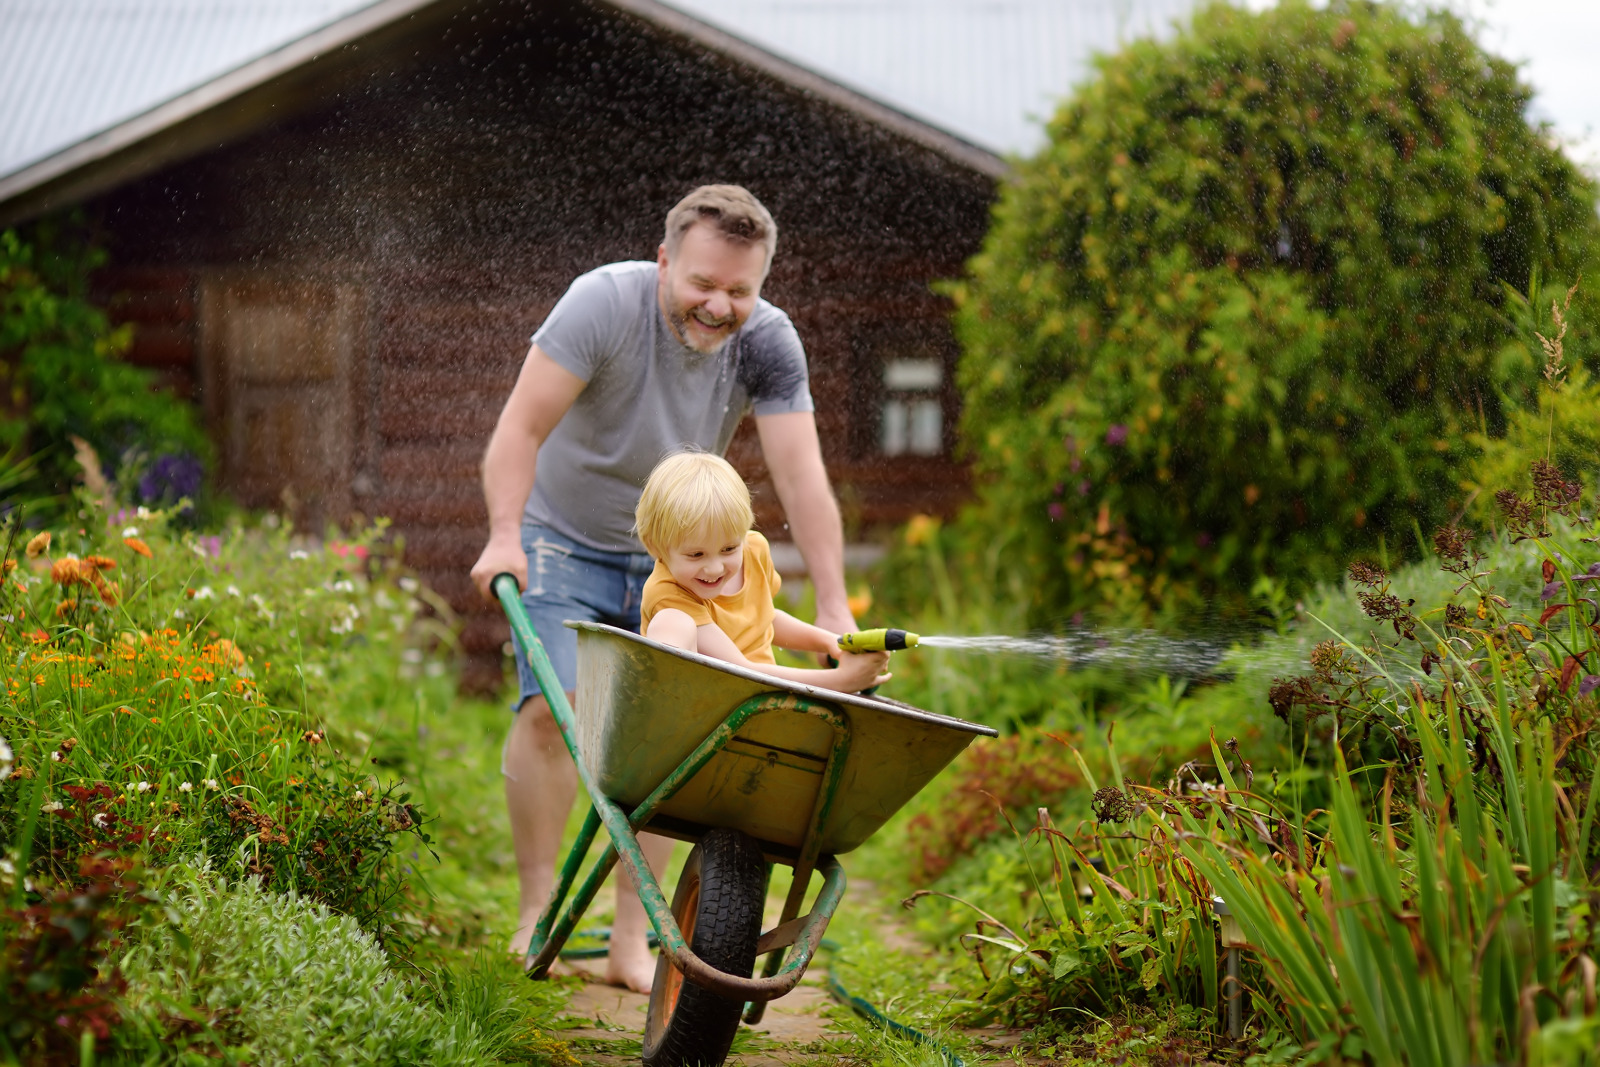 father pushing son in a wheelbarrow, while the son waters the garden with a hose. giggling free happy